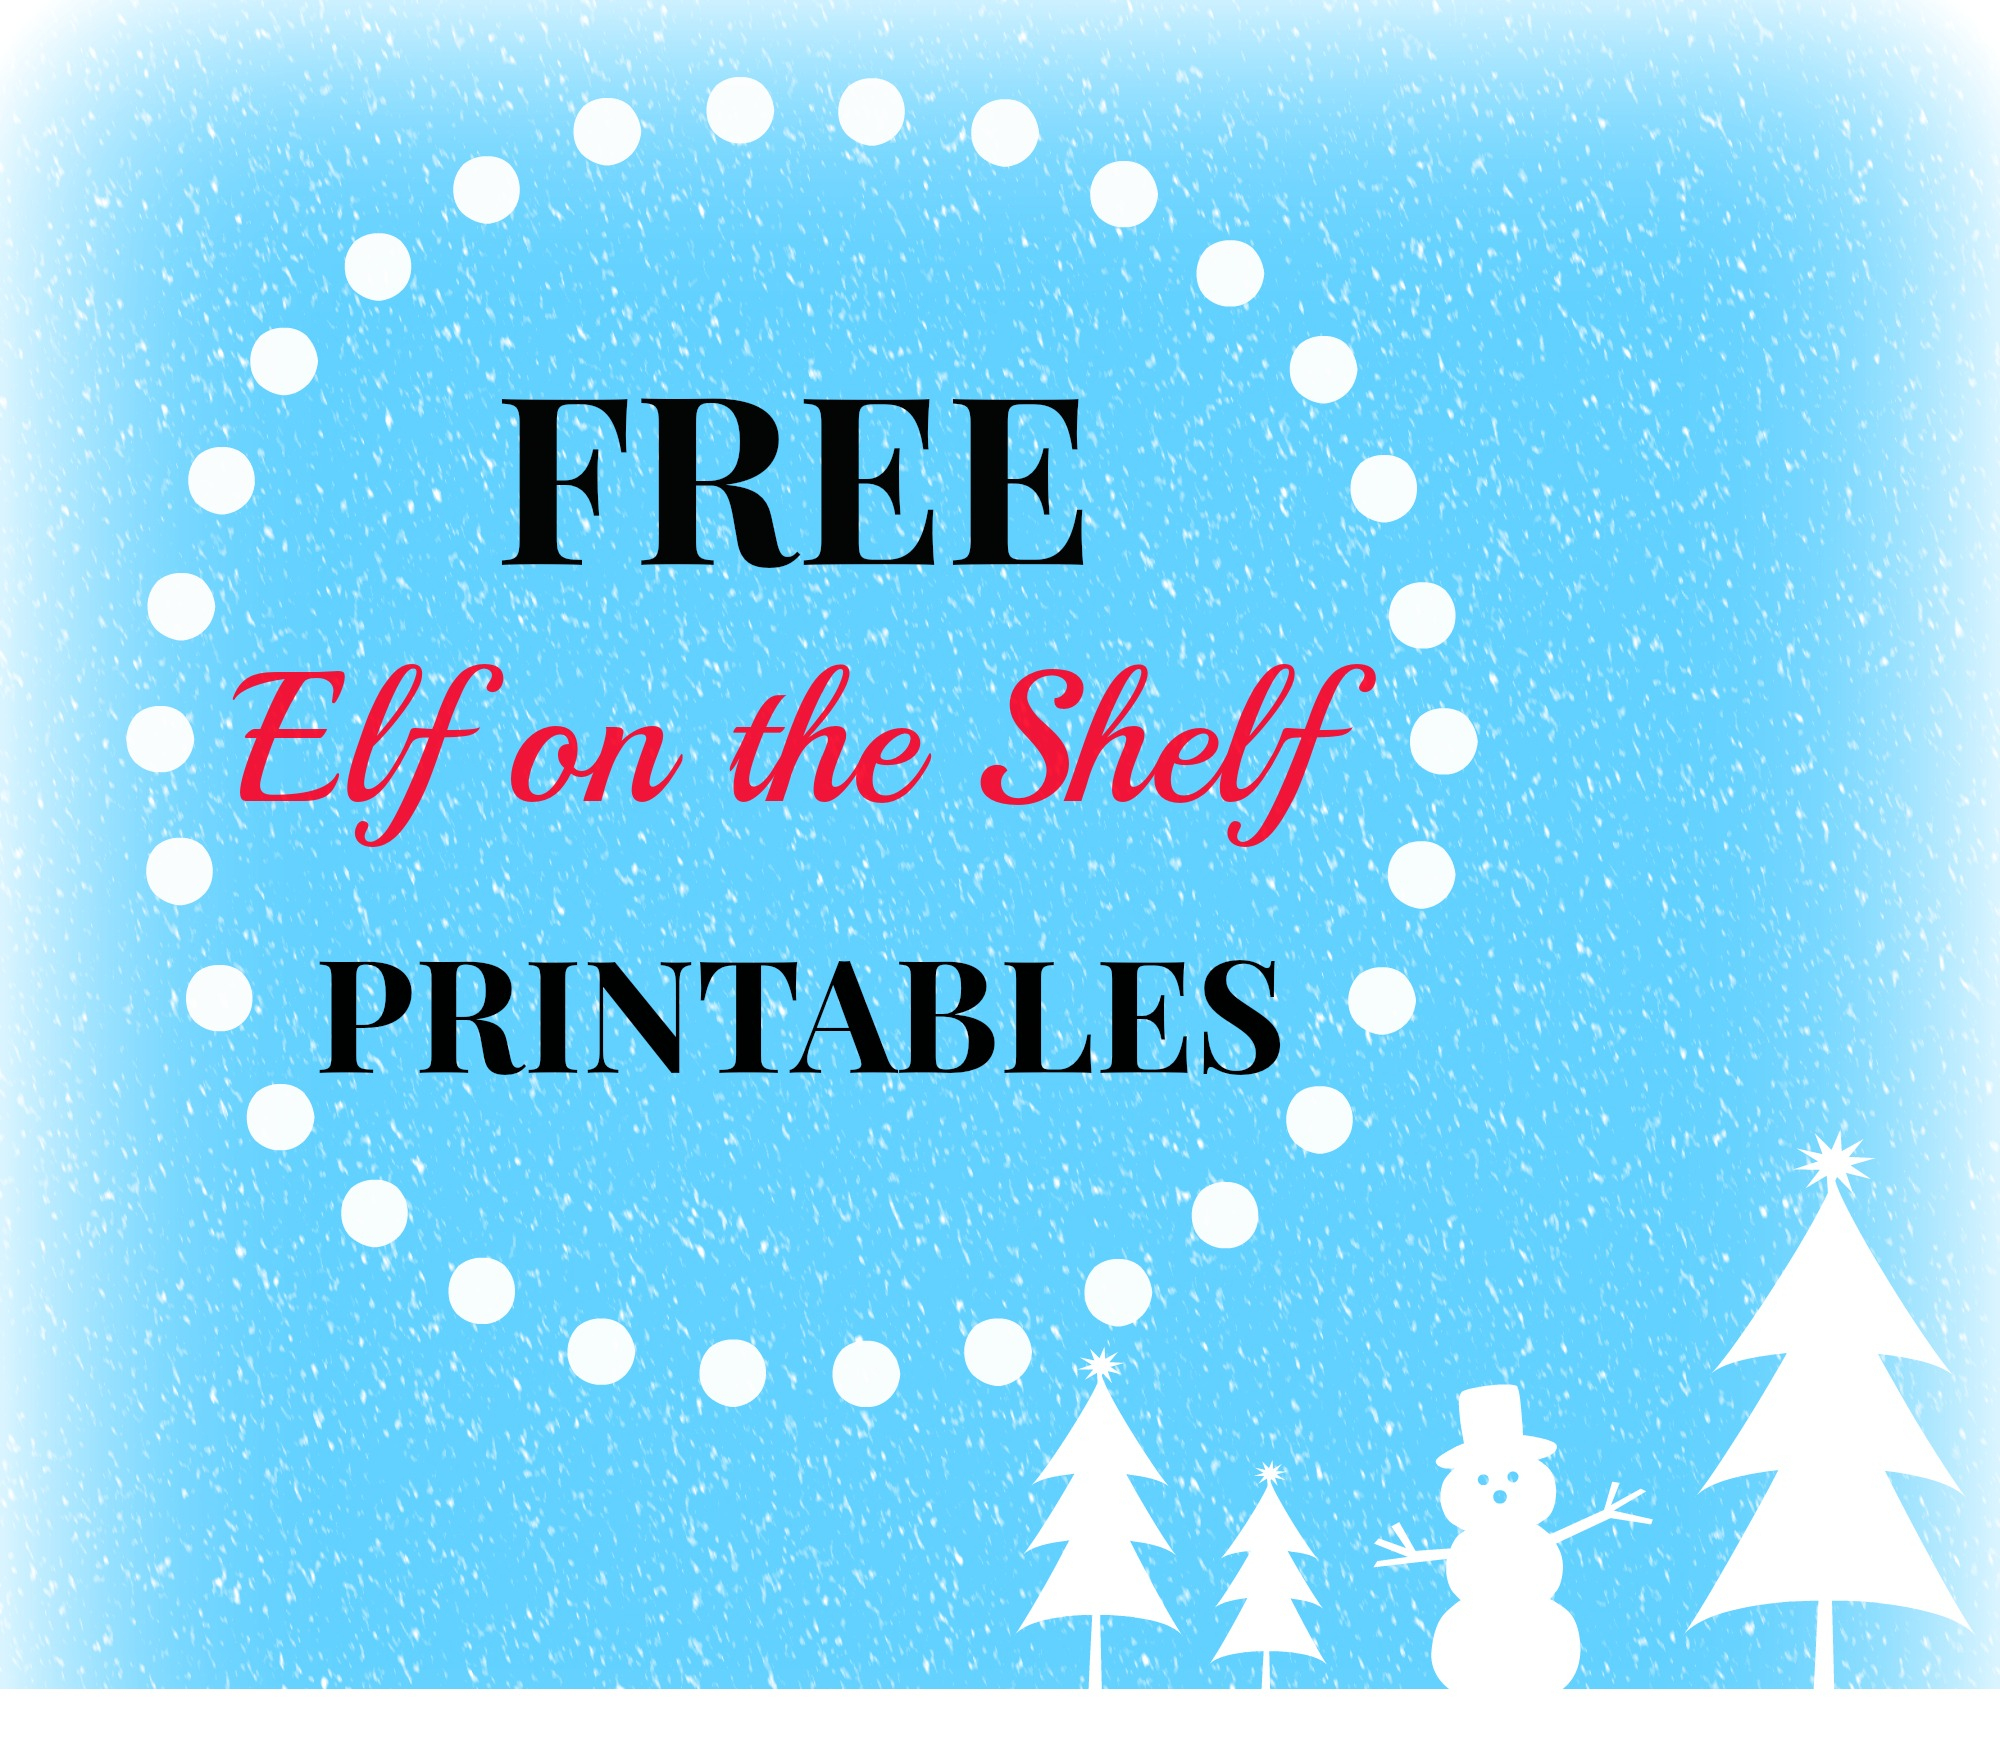 Free Elf On The Shelf Printables – Style With Nancy - Elf On The Shelf Kissing Booth Free Printable